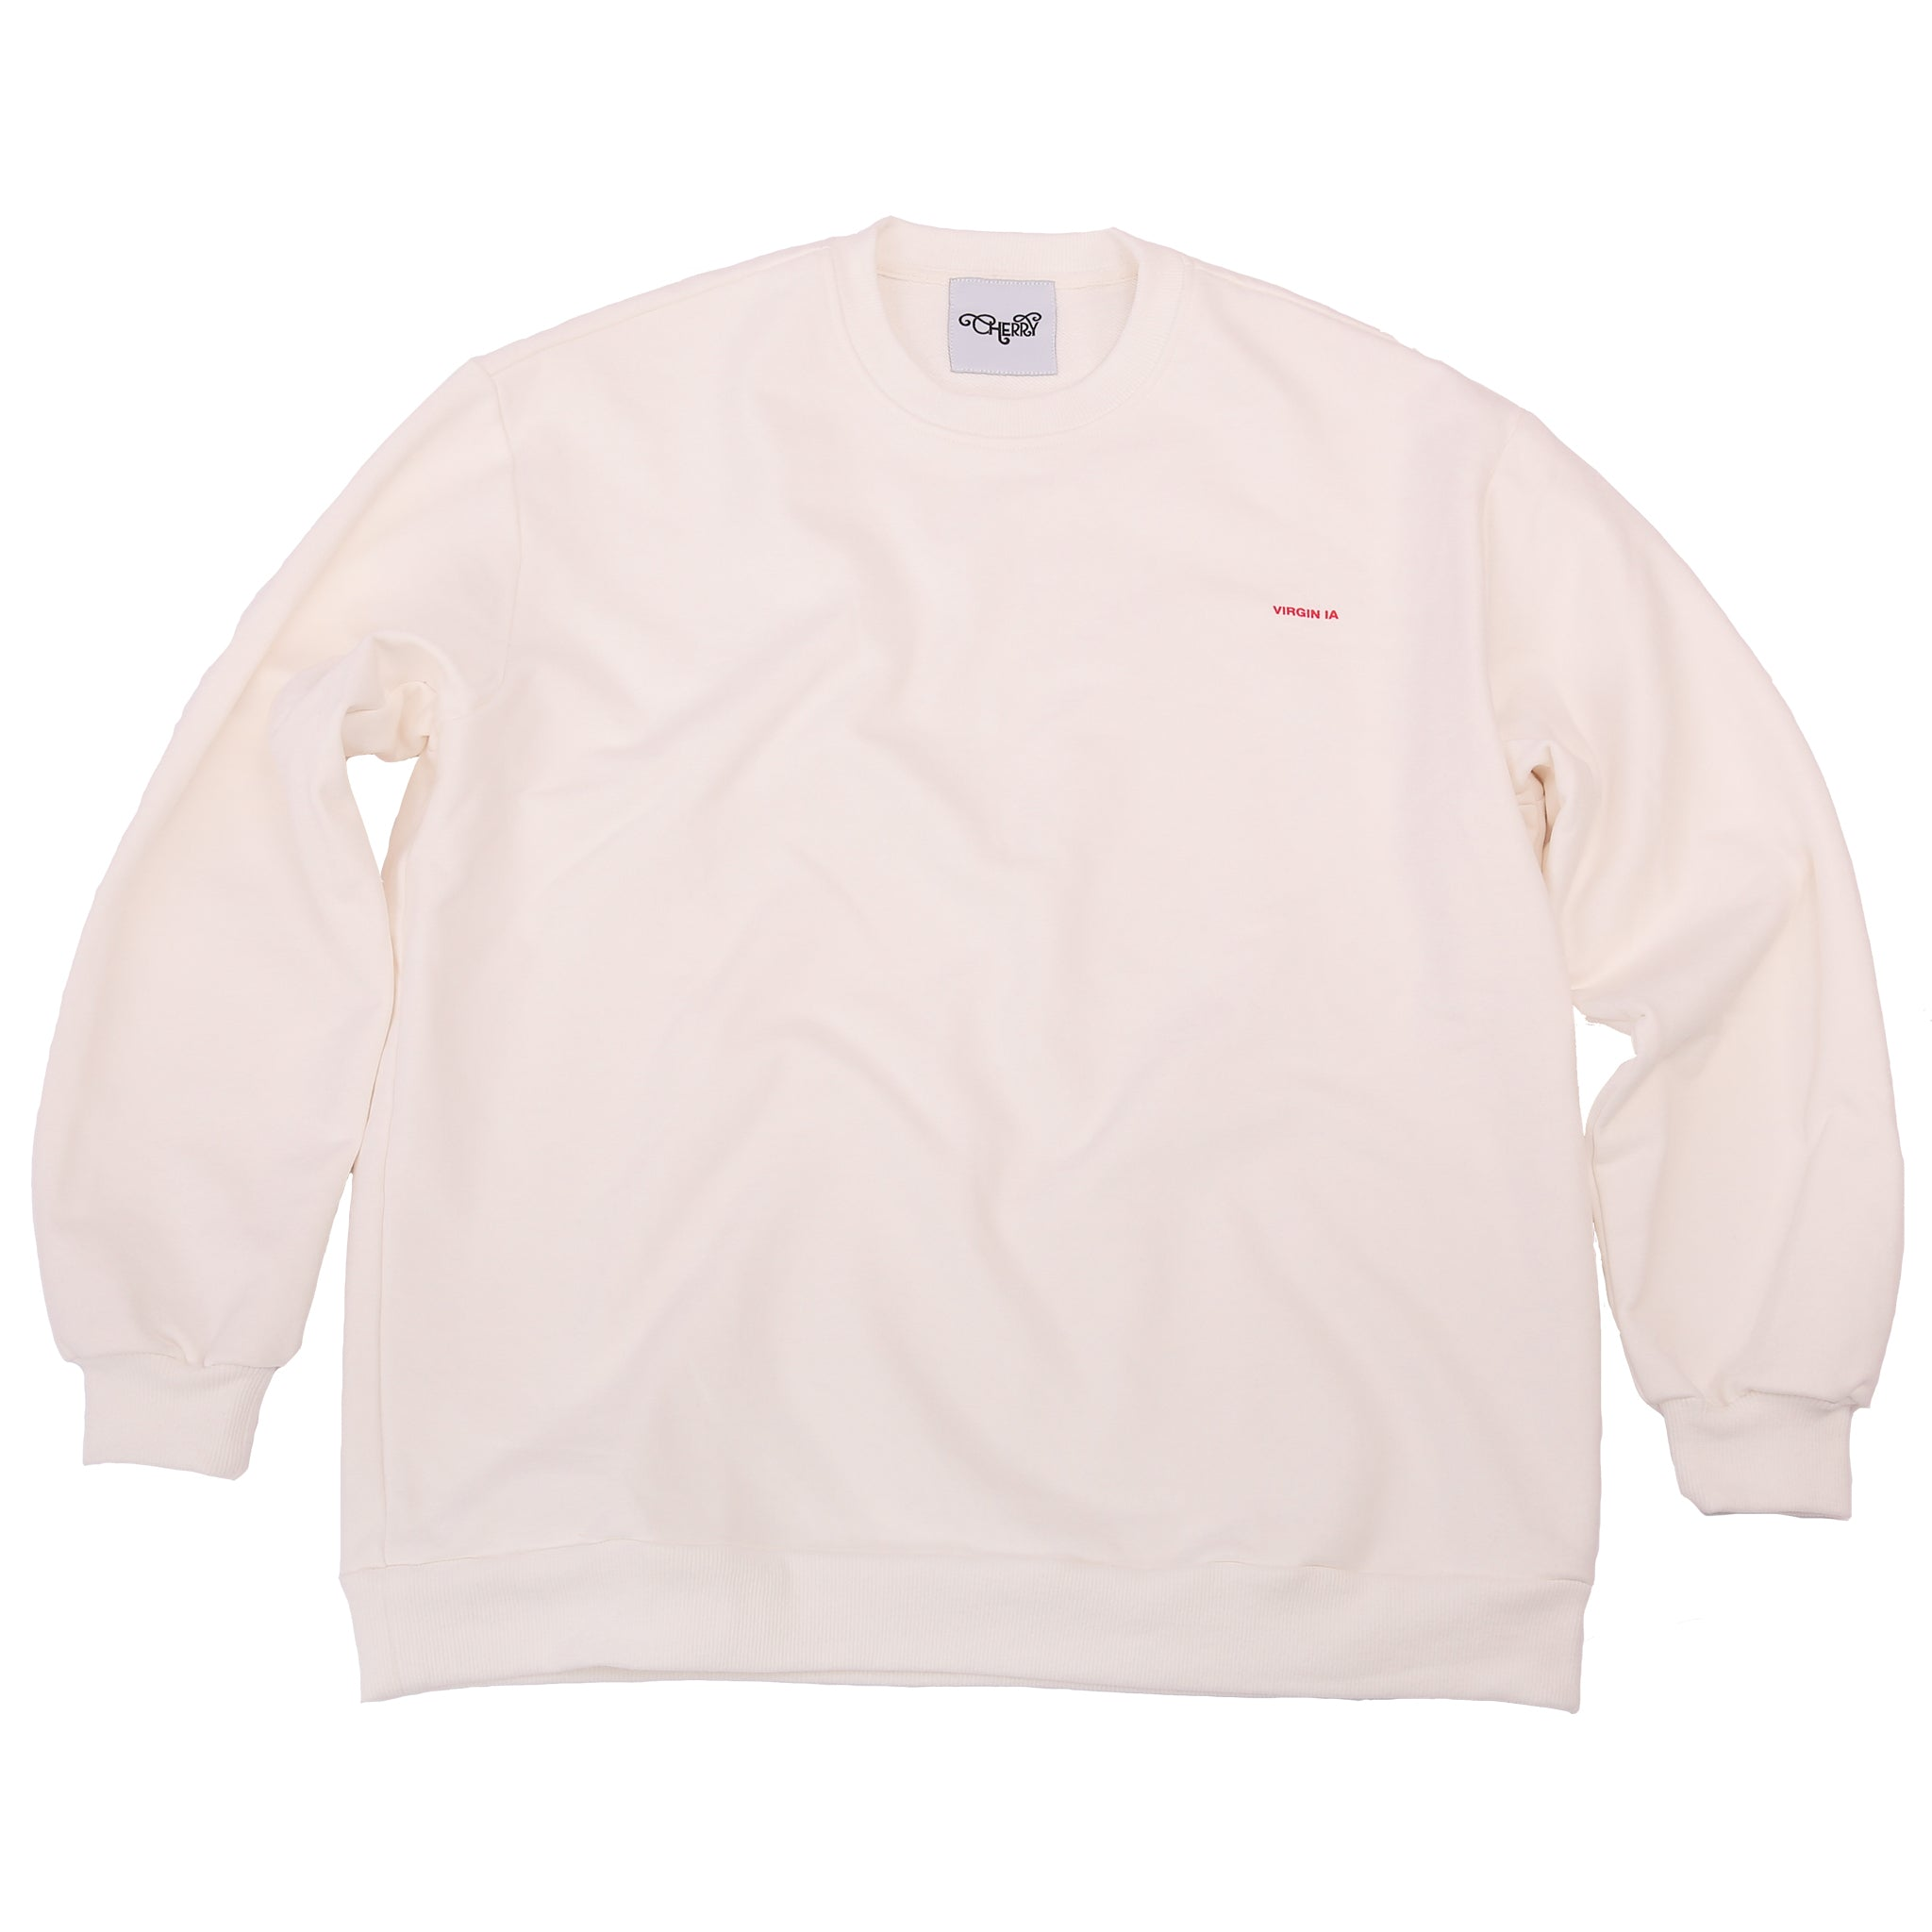 CHERRY DISCOTHEQUE - VIRGIN IA SWEATER IN OFF WHITE